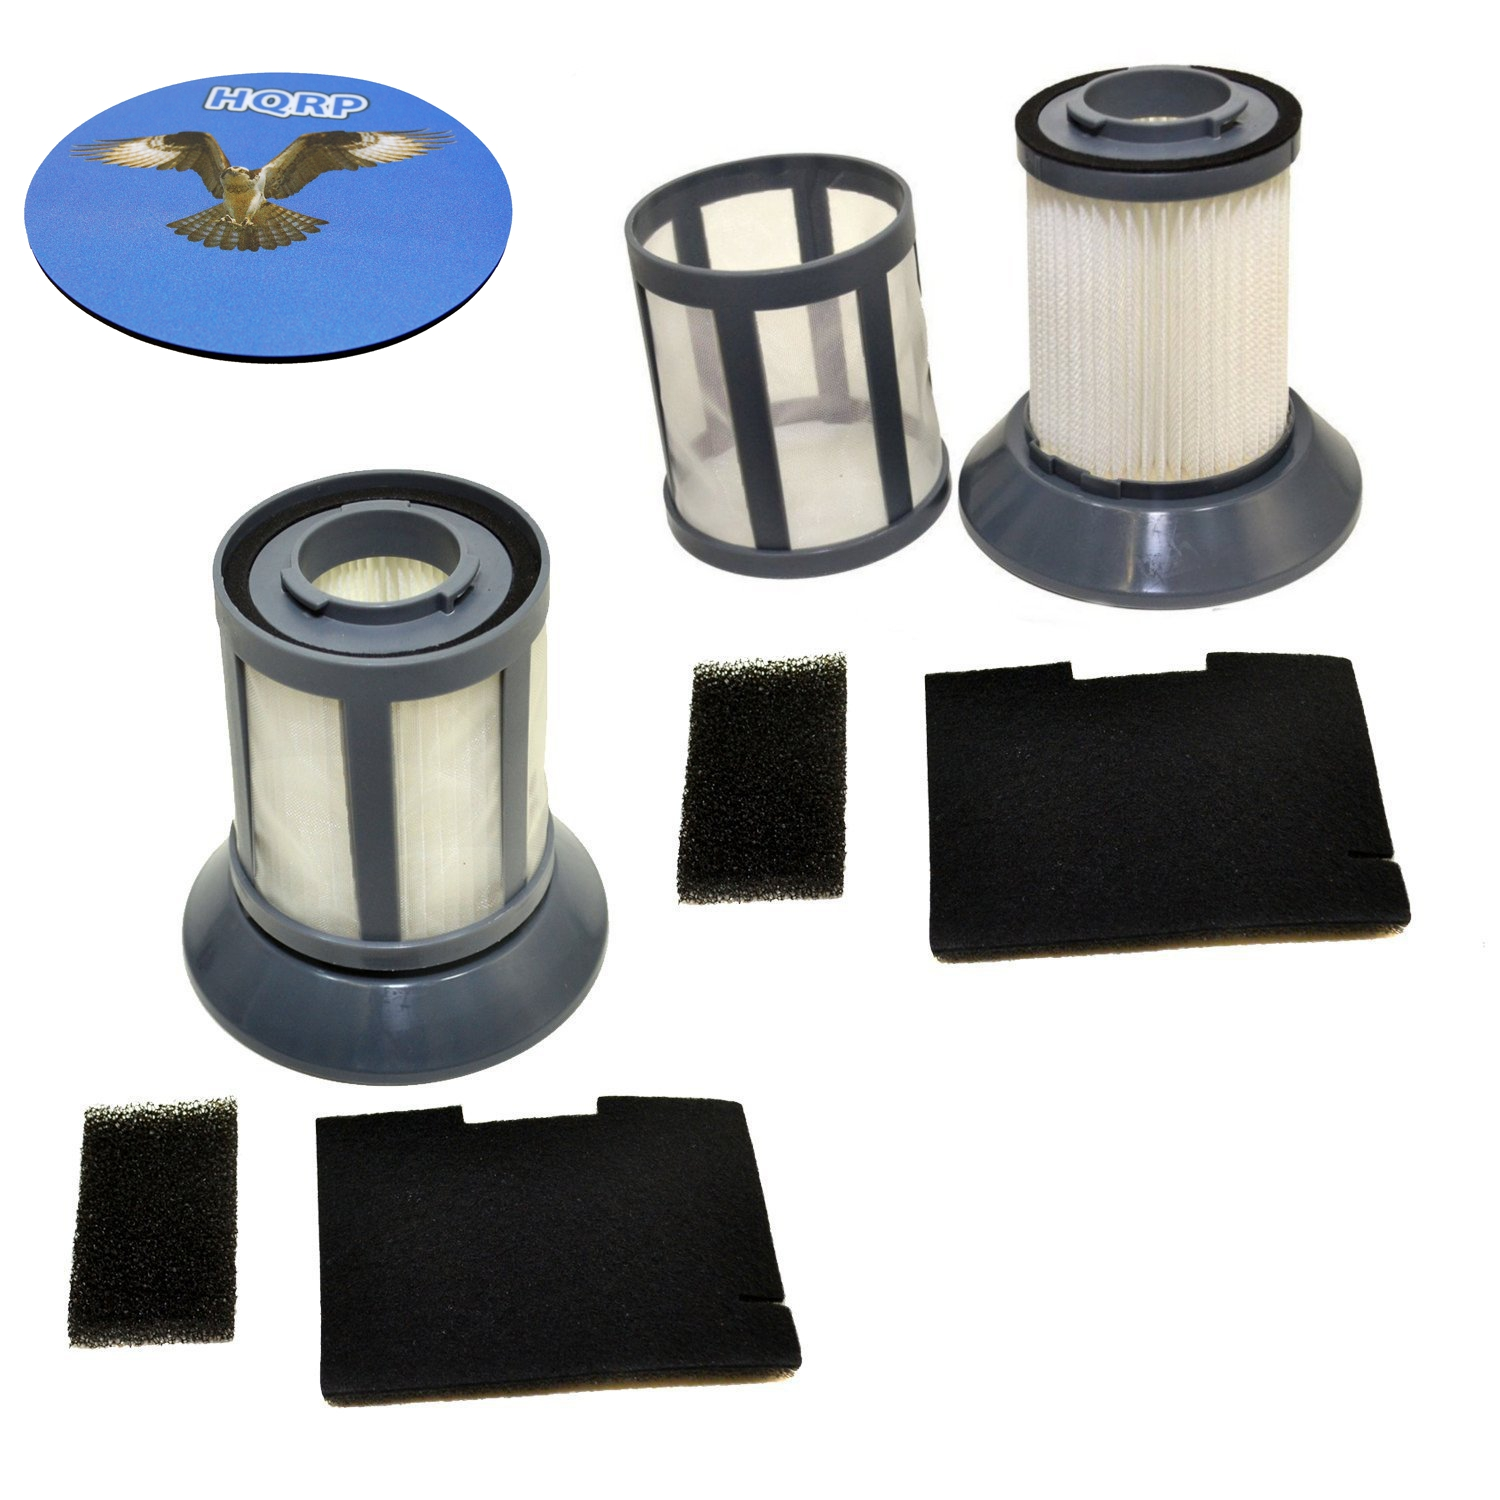 HQRP 2-Pack Dirt Cup Filter Assembly for Bissell 6489 / 64892 Zing Bagless Canister Vacuum Cleaner plus HQRP Coaster